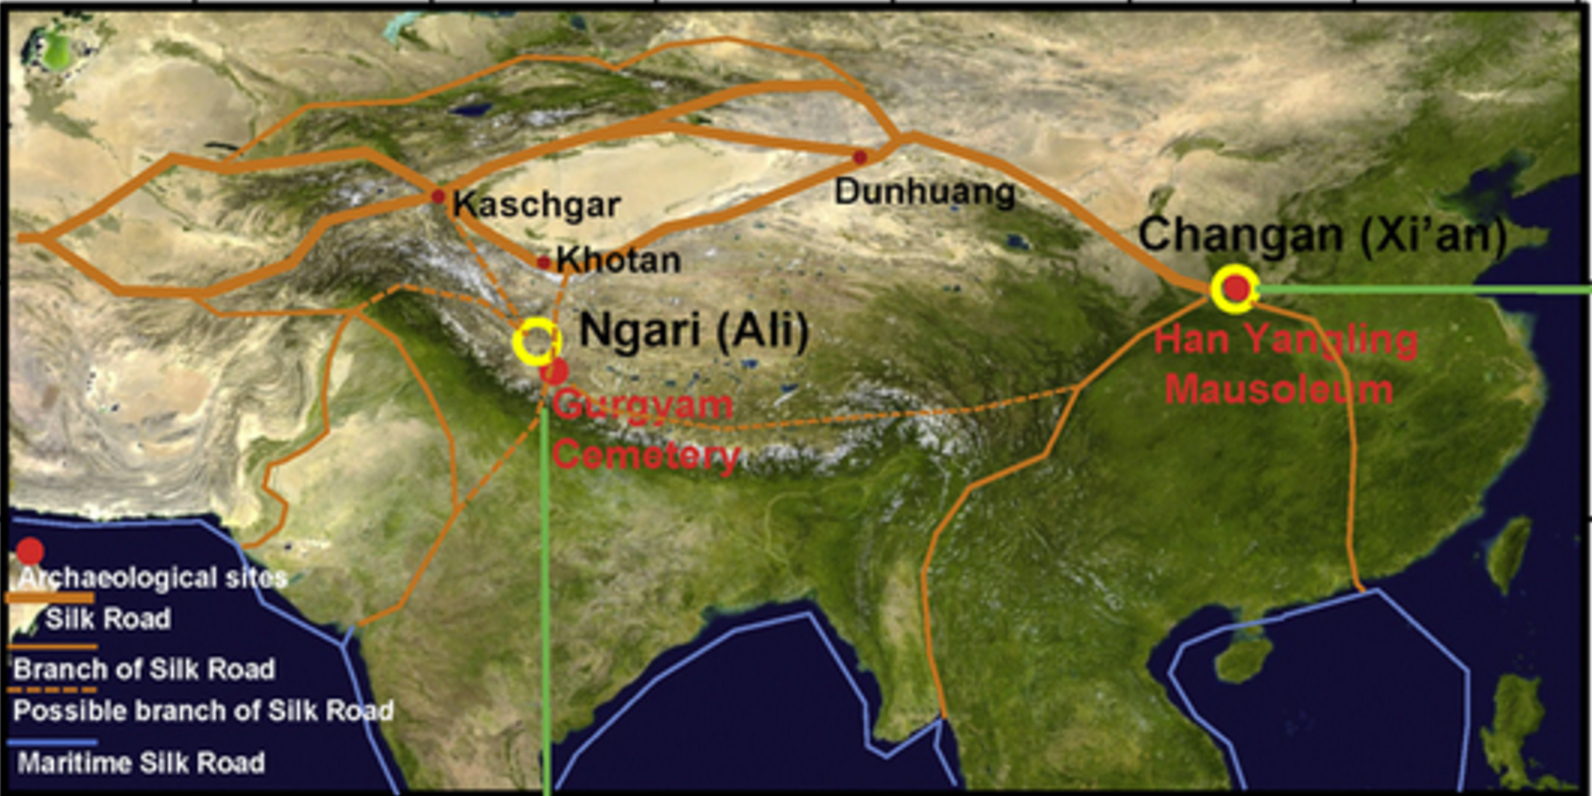 The dotted line across the Tibetan Plateau indicates the probable route taken between Chang'an and the site in Tibet where the second block of tea was found. Routes established during the Tang Dynasty are in solid red, to the north.